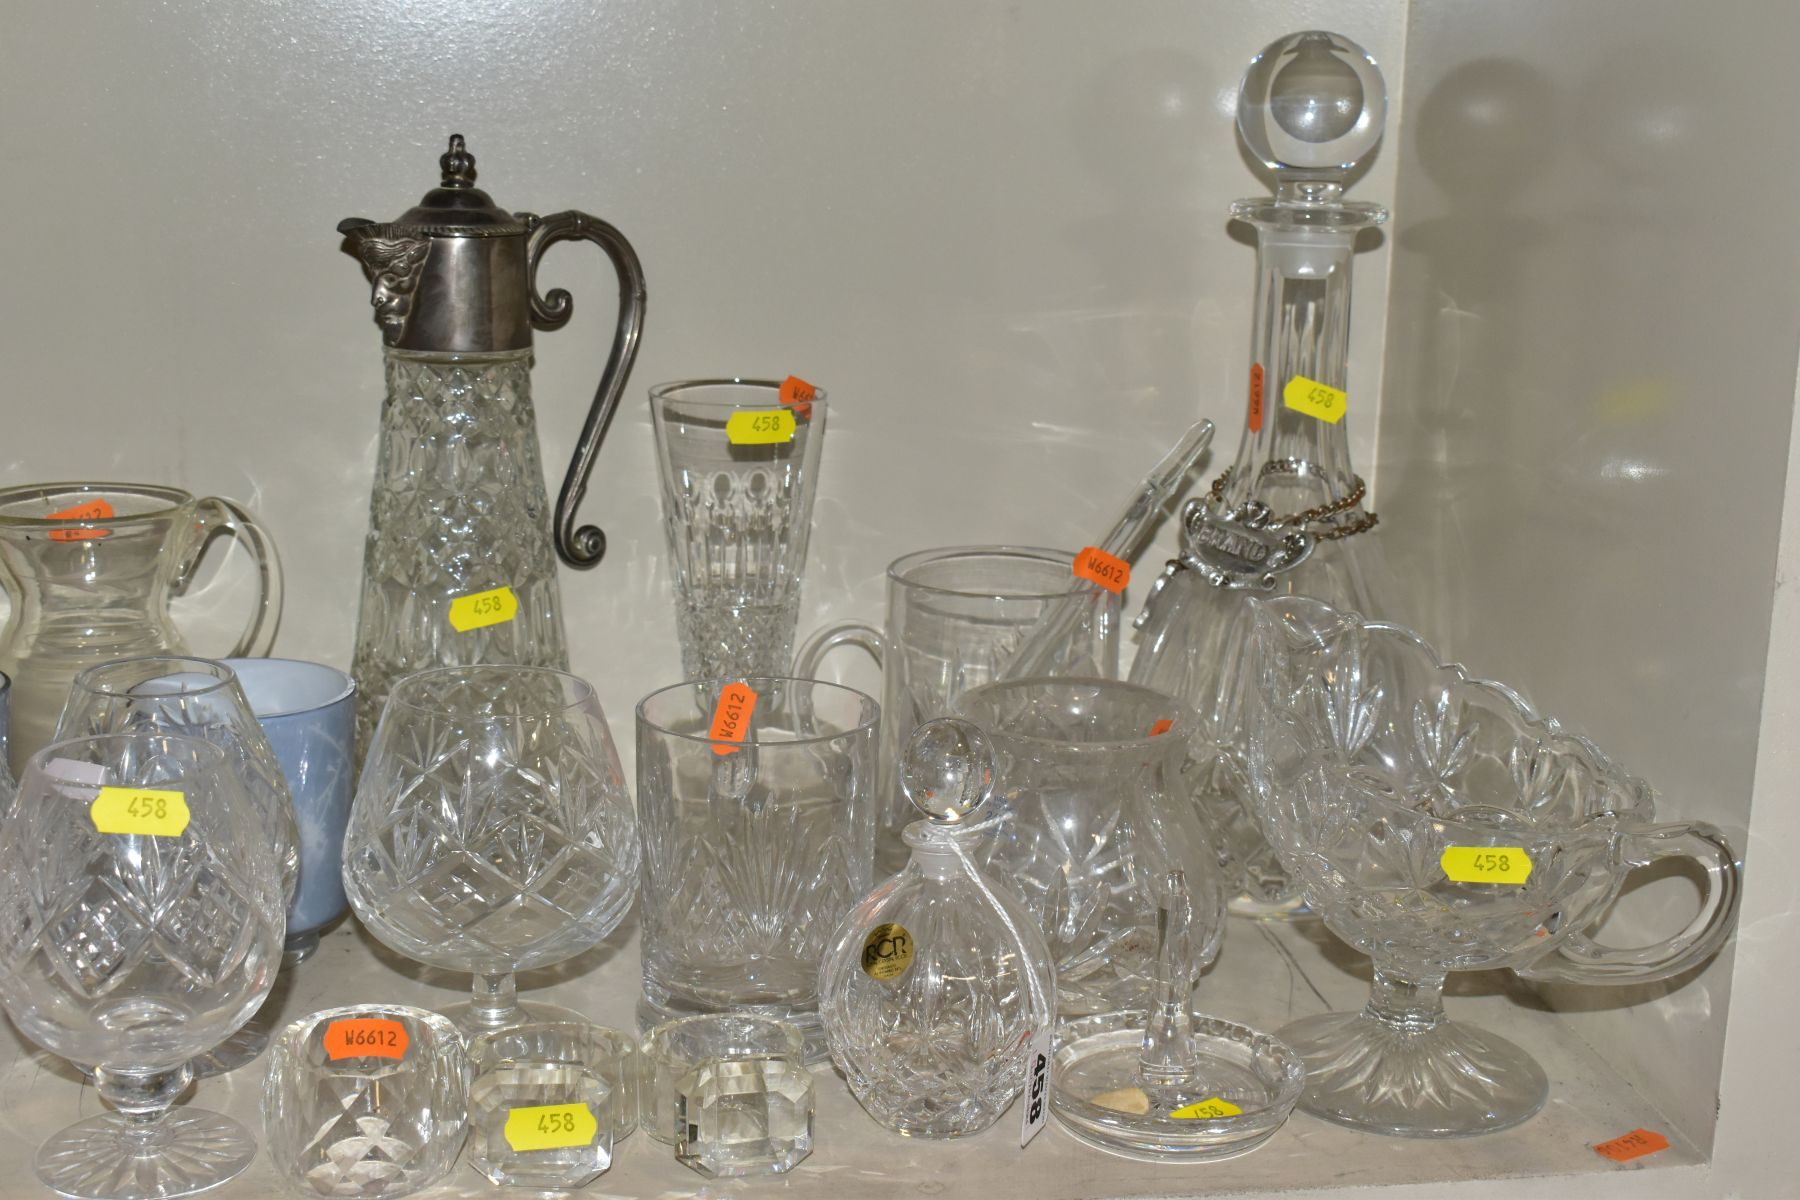 A SMALL QUANTITY OF CLEAR AND COLOURED GLASSWARE, including an Edinburgh Crystal vase, height 25. - Image 2 of 10